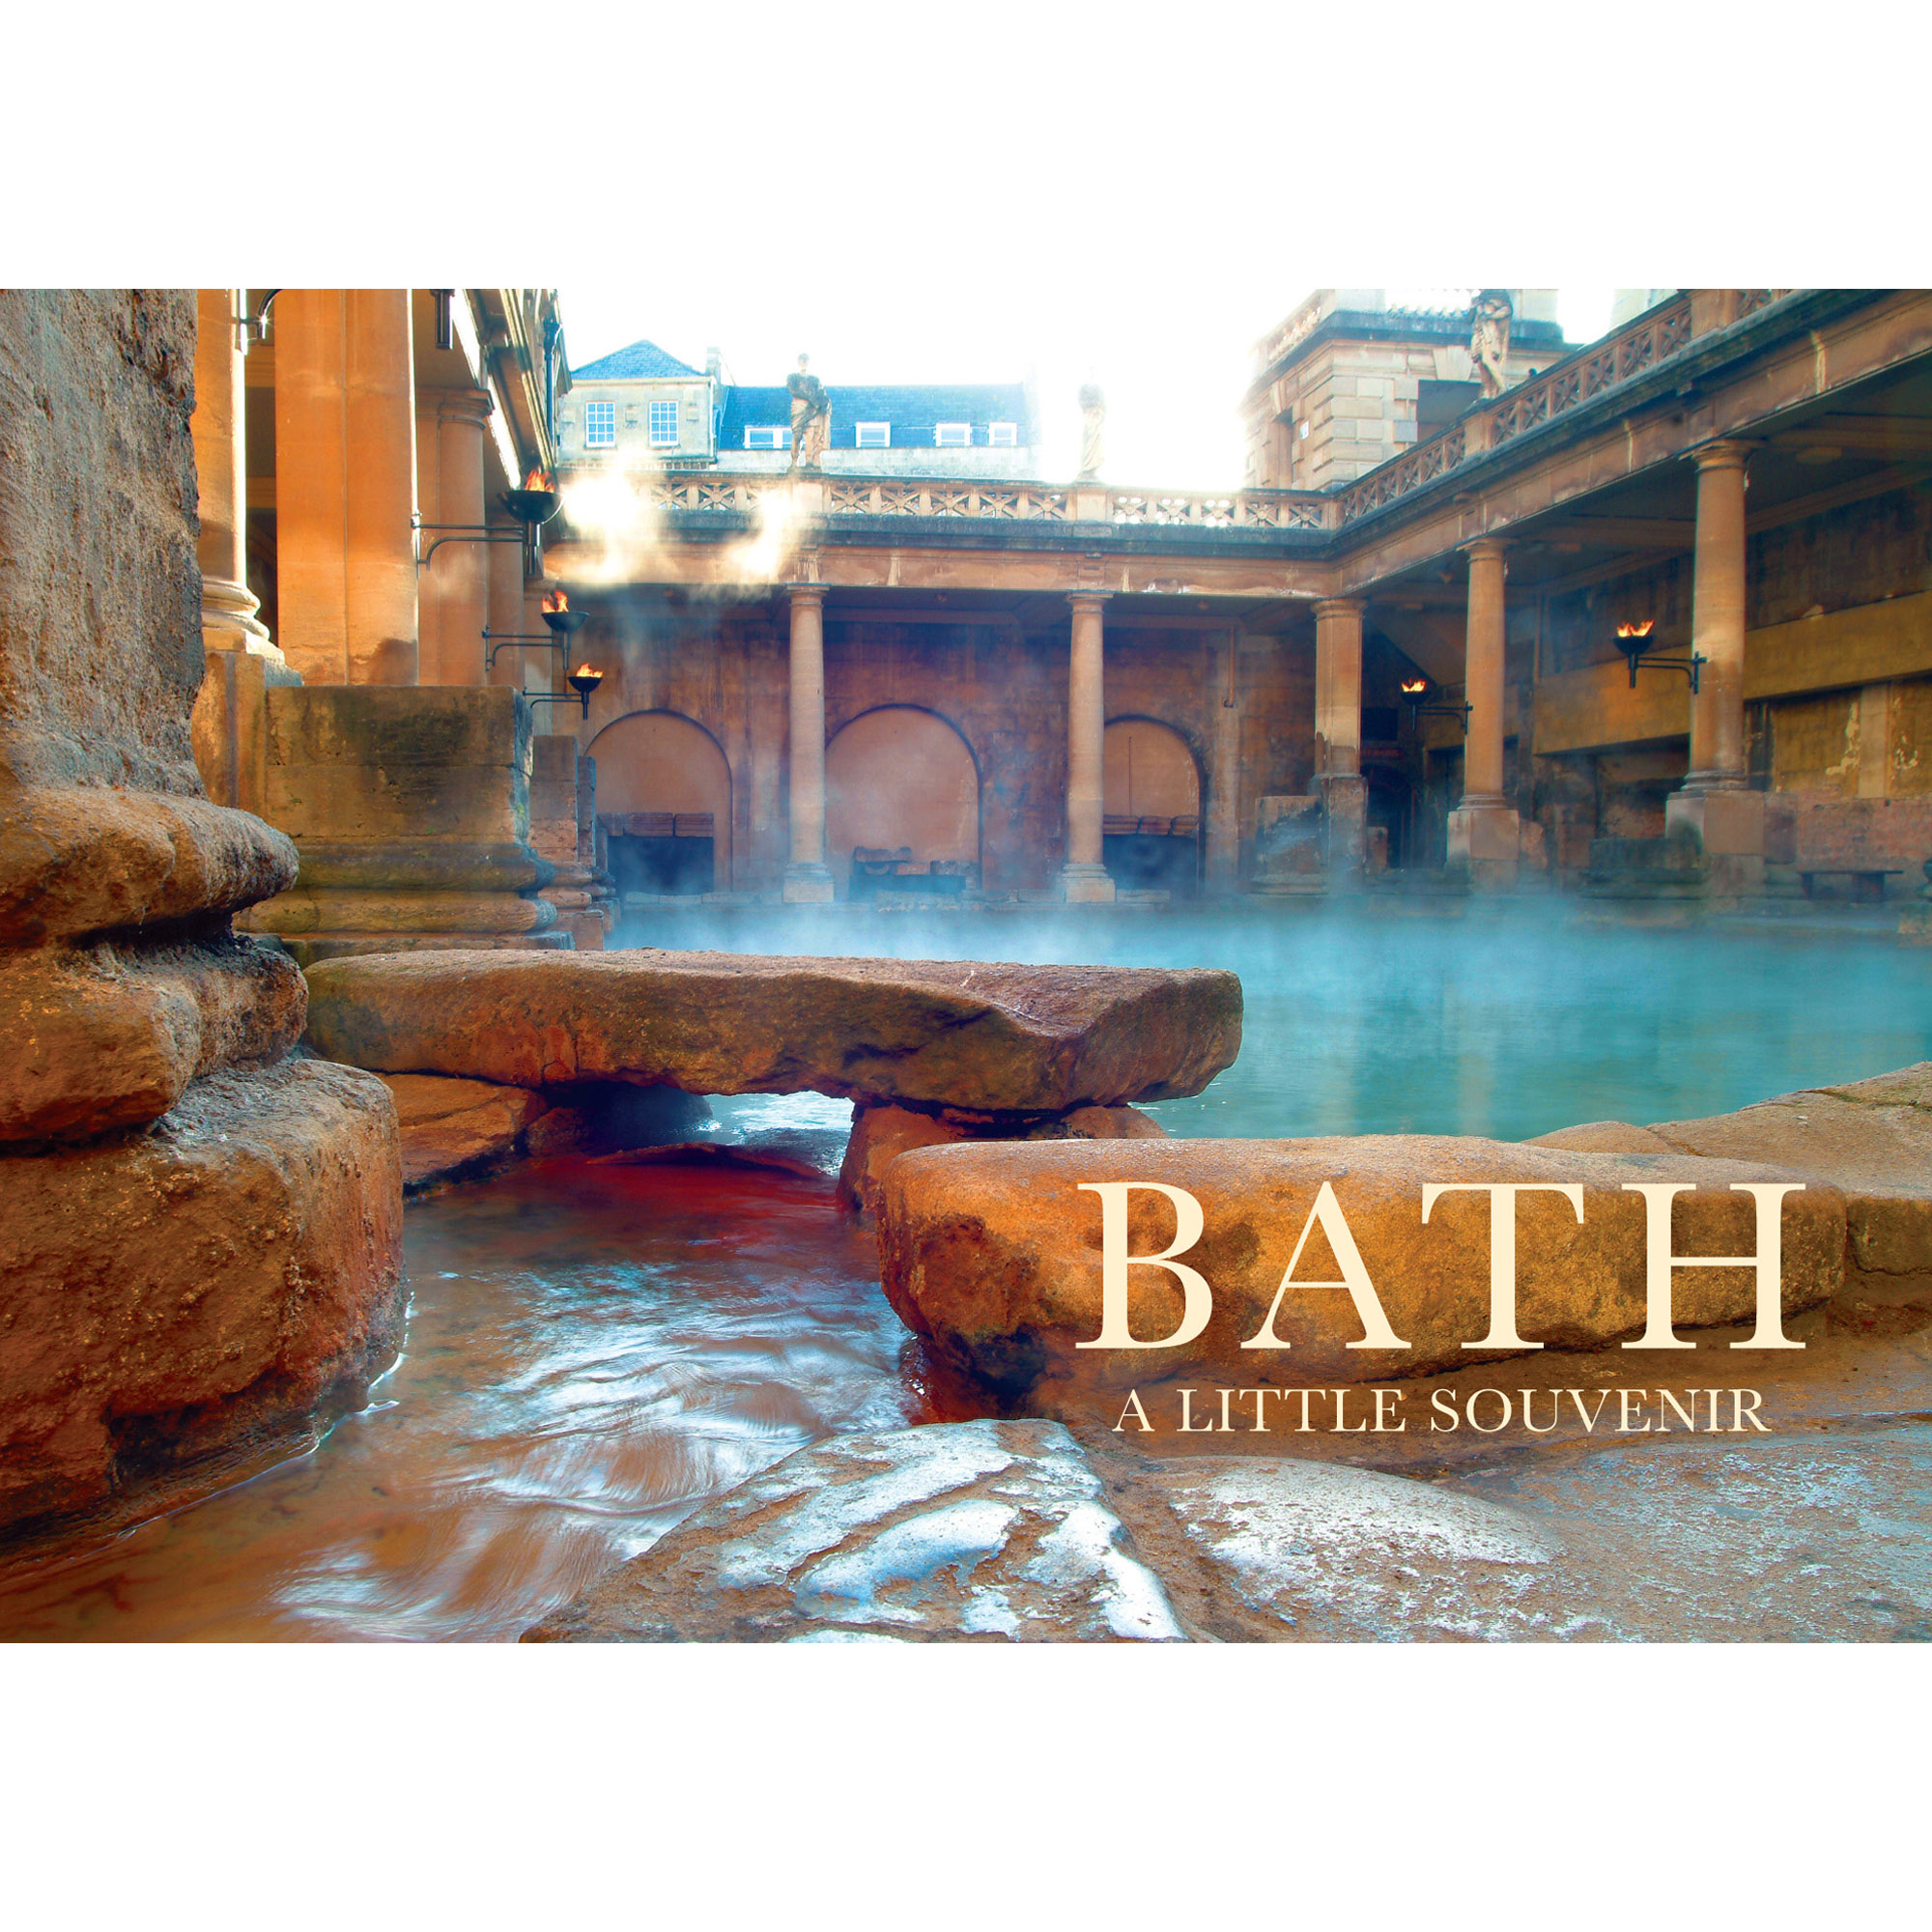 Bath a little souvenir - front cover